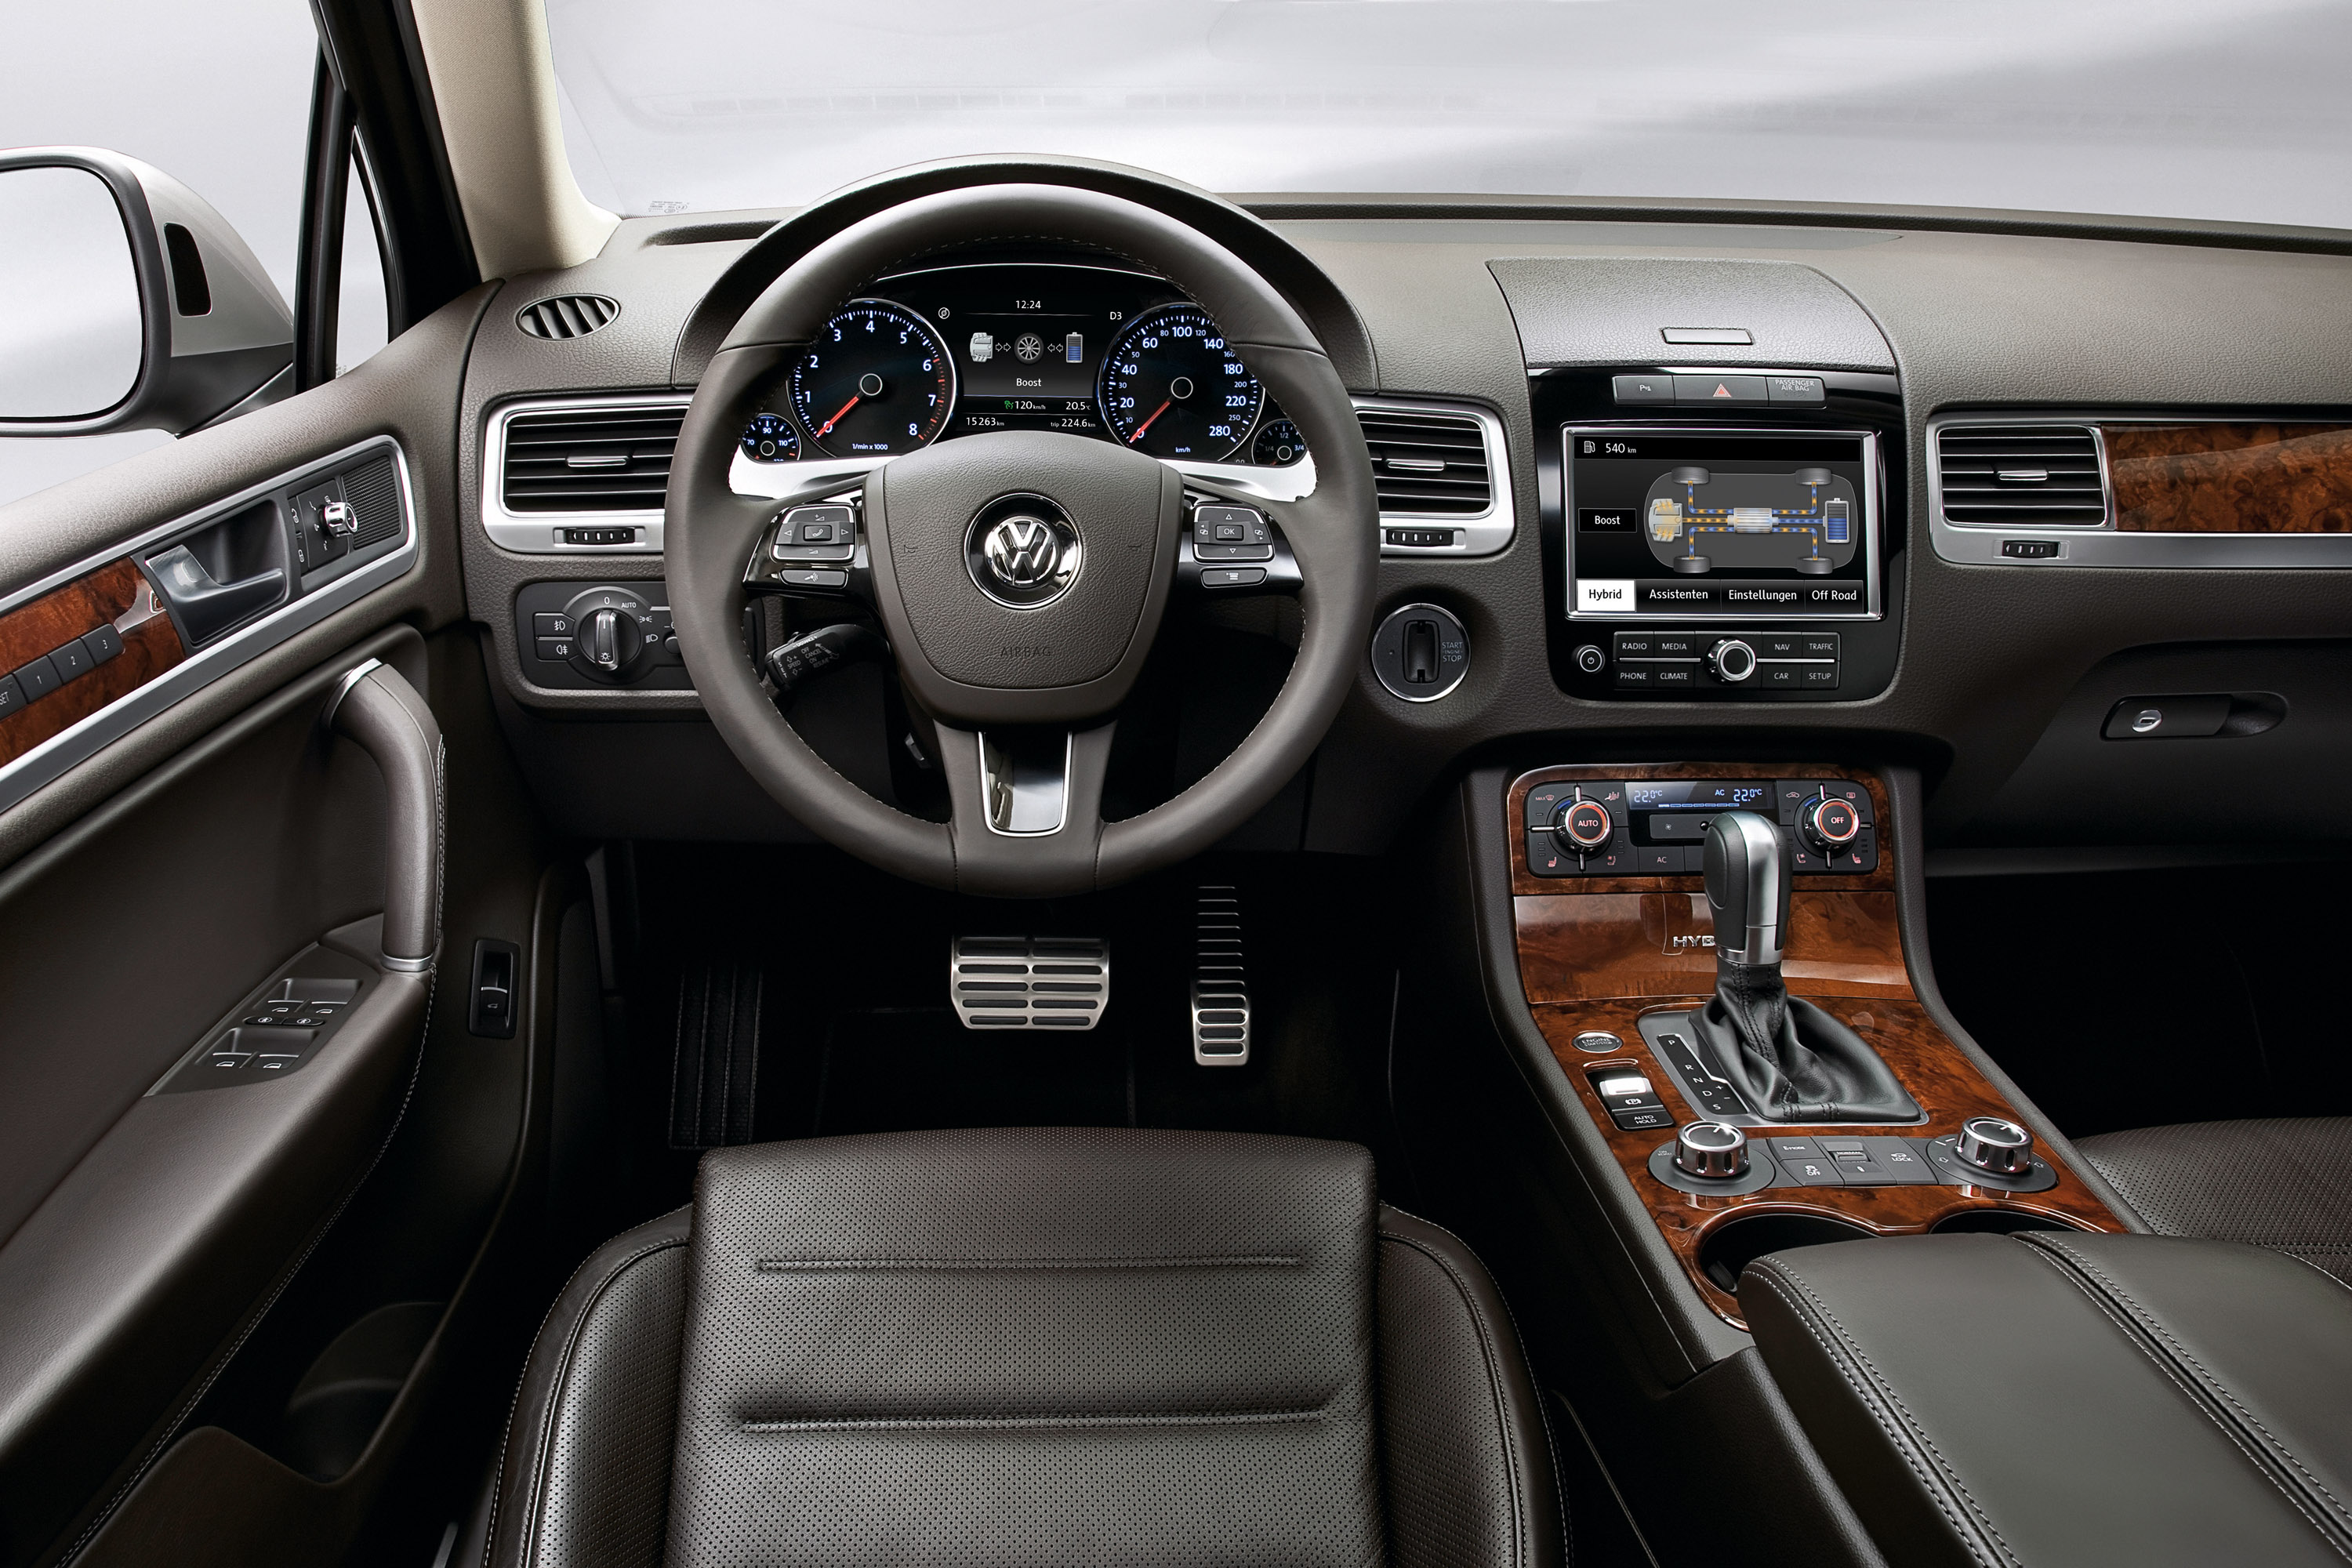 2011 Volkswagen Touareg fully unwrapped